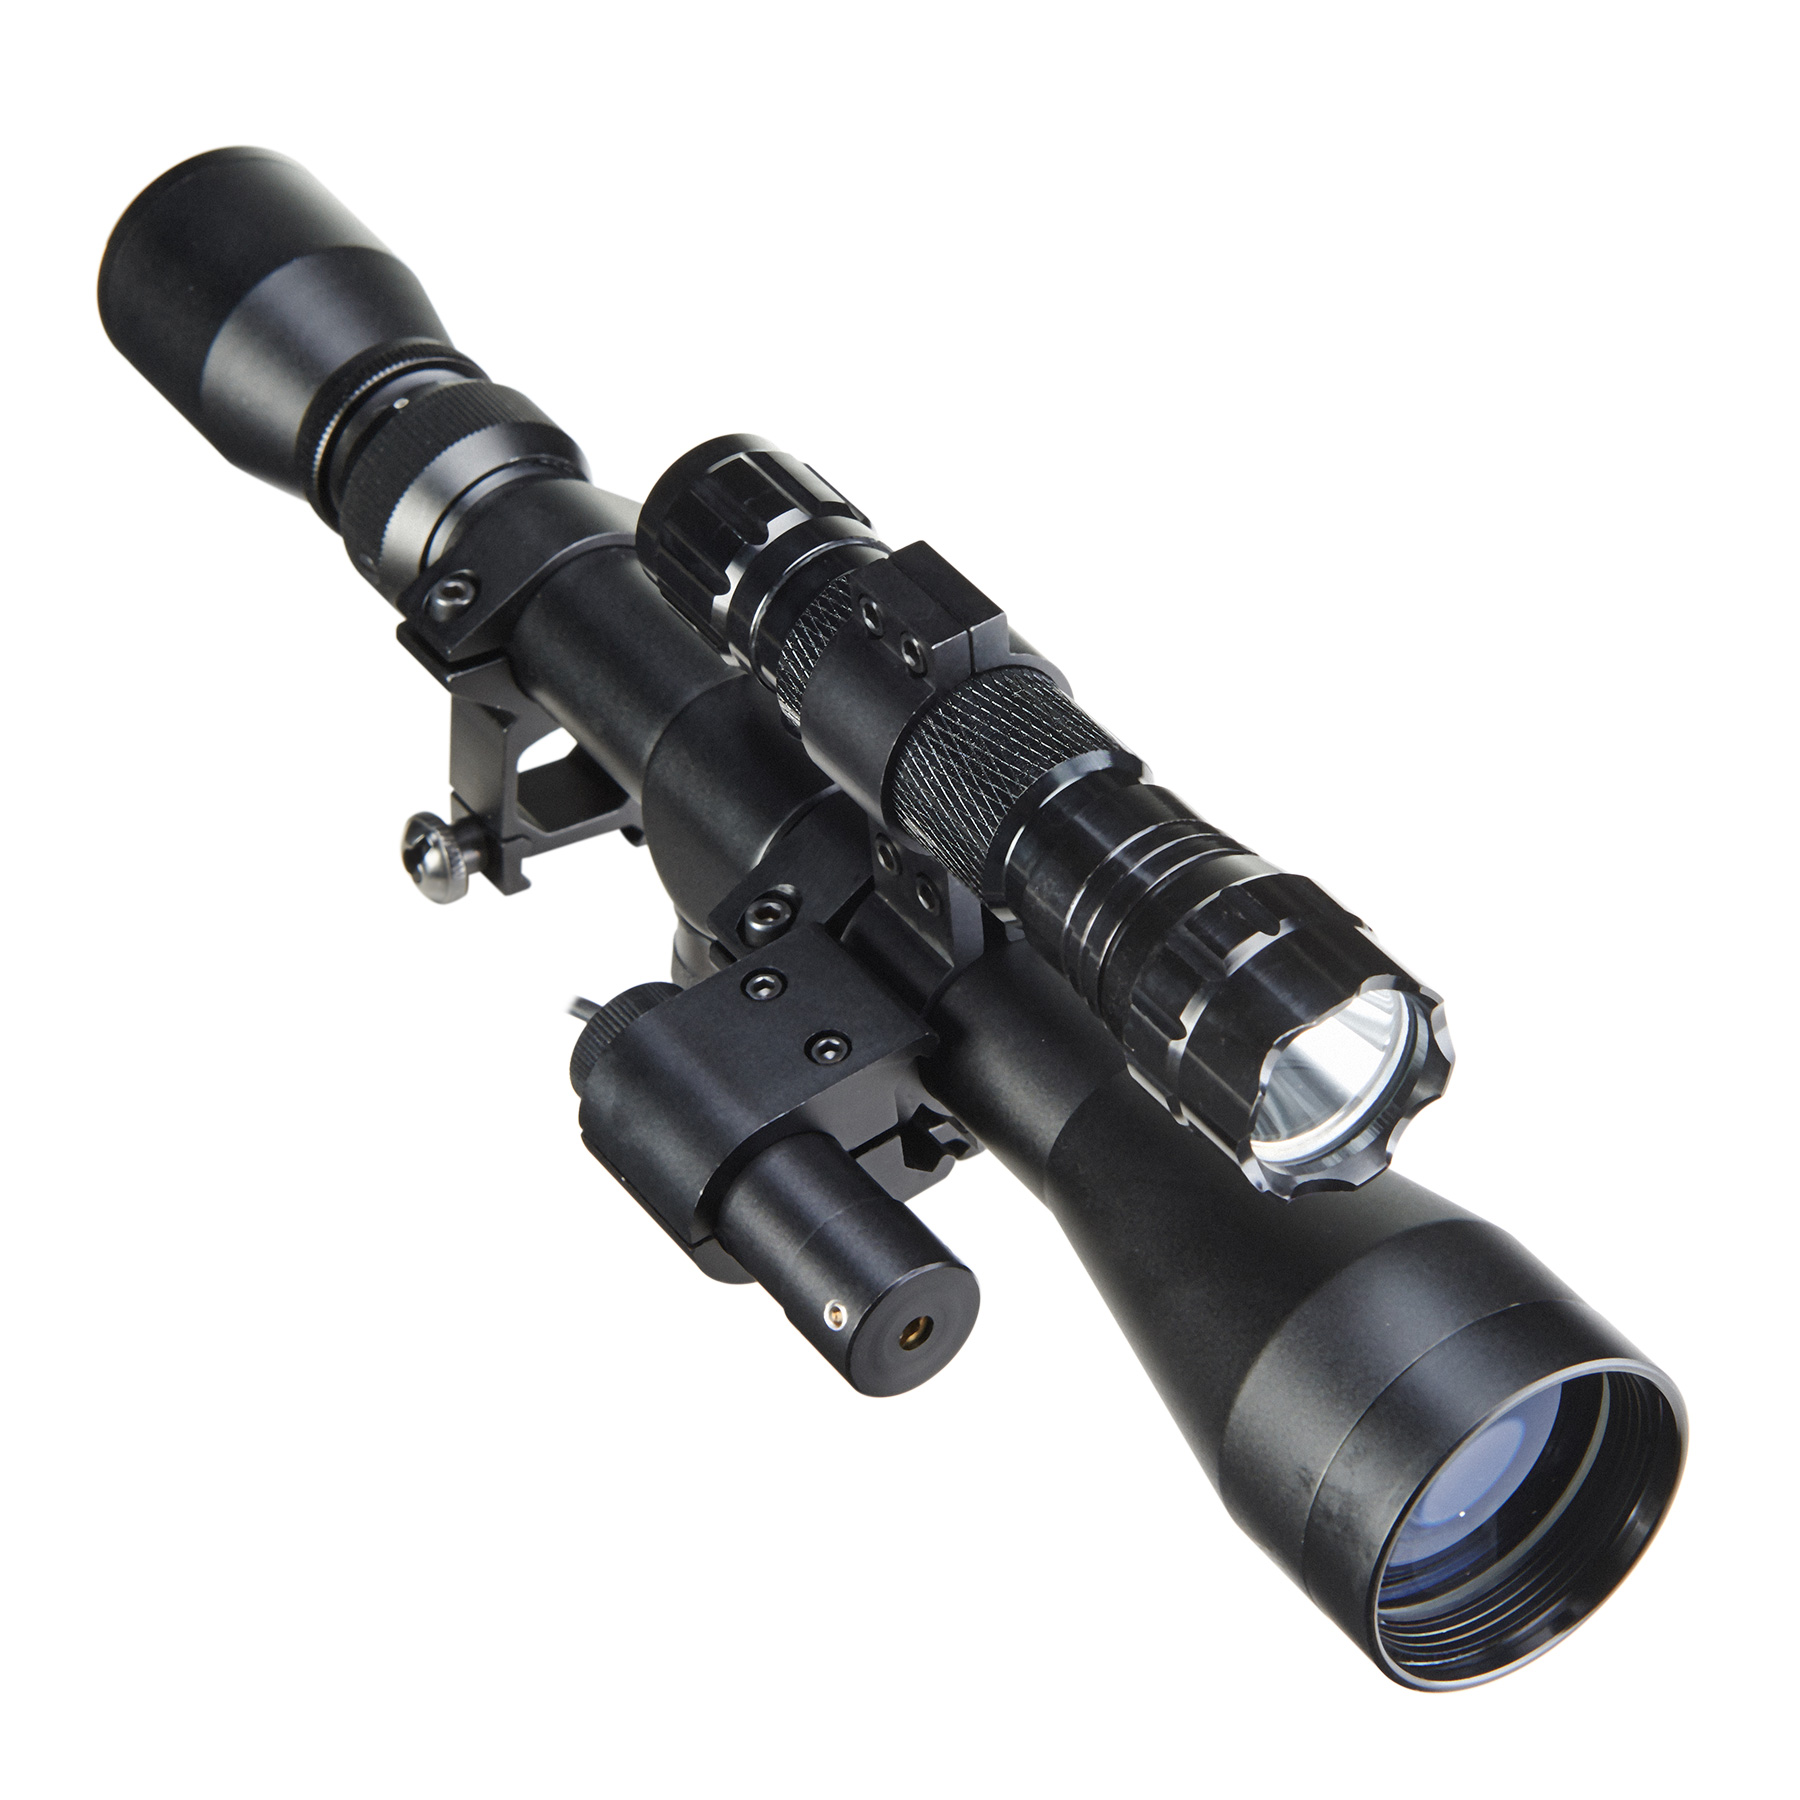 Tactical Cross Reflex Riflescope with Laser Sight 3-9X40mm for Hunting by